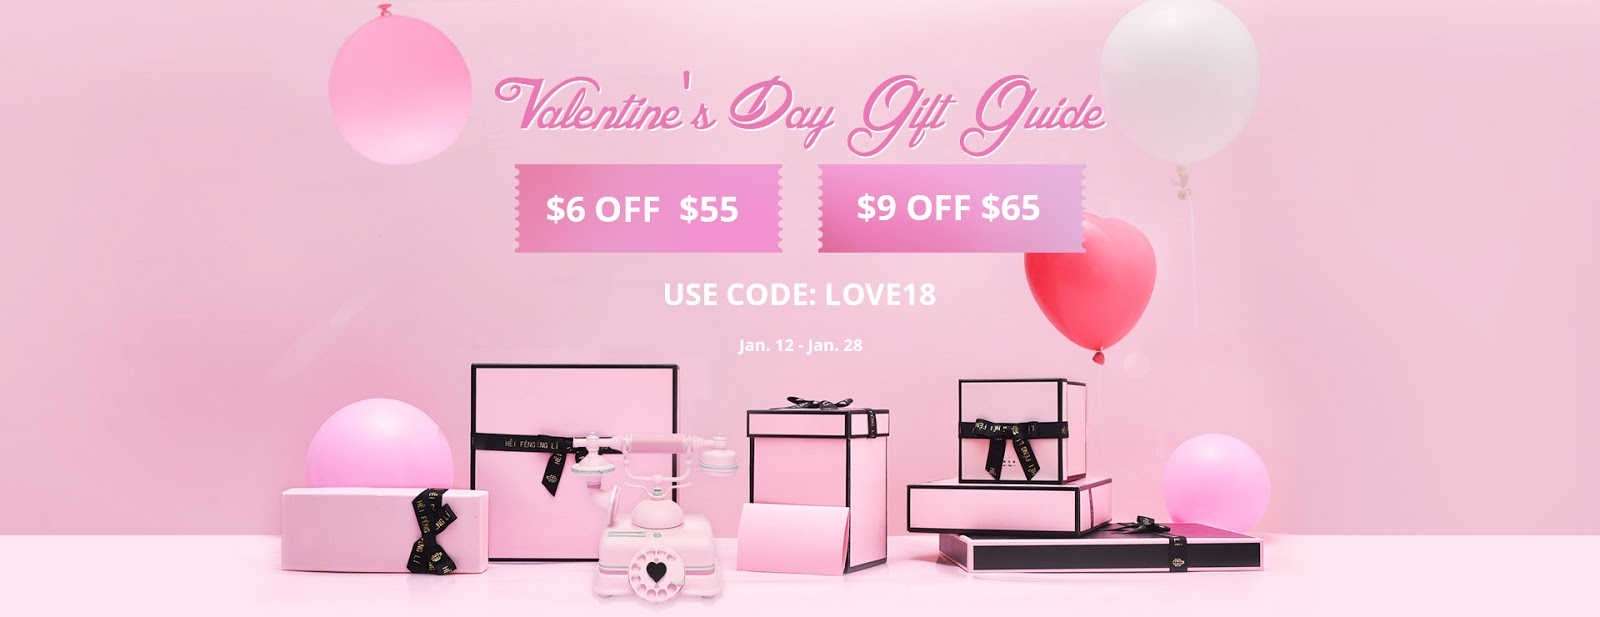 https://www.zaful.com/m-promotion-active-valentines-sale.html?lkid=12661851